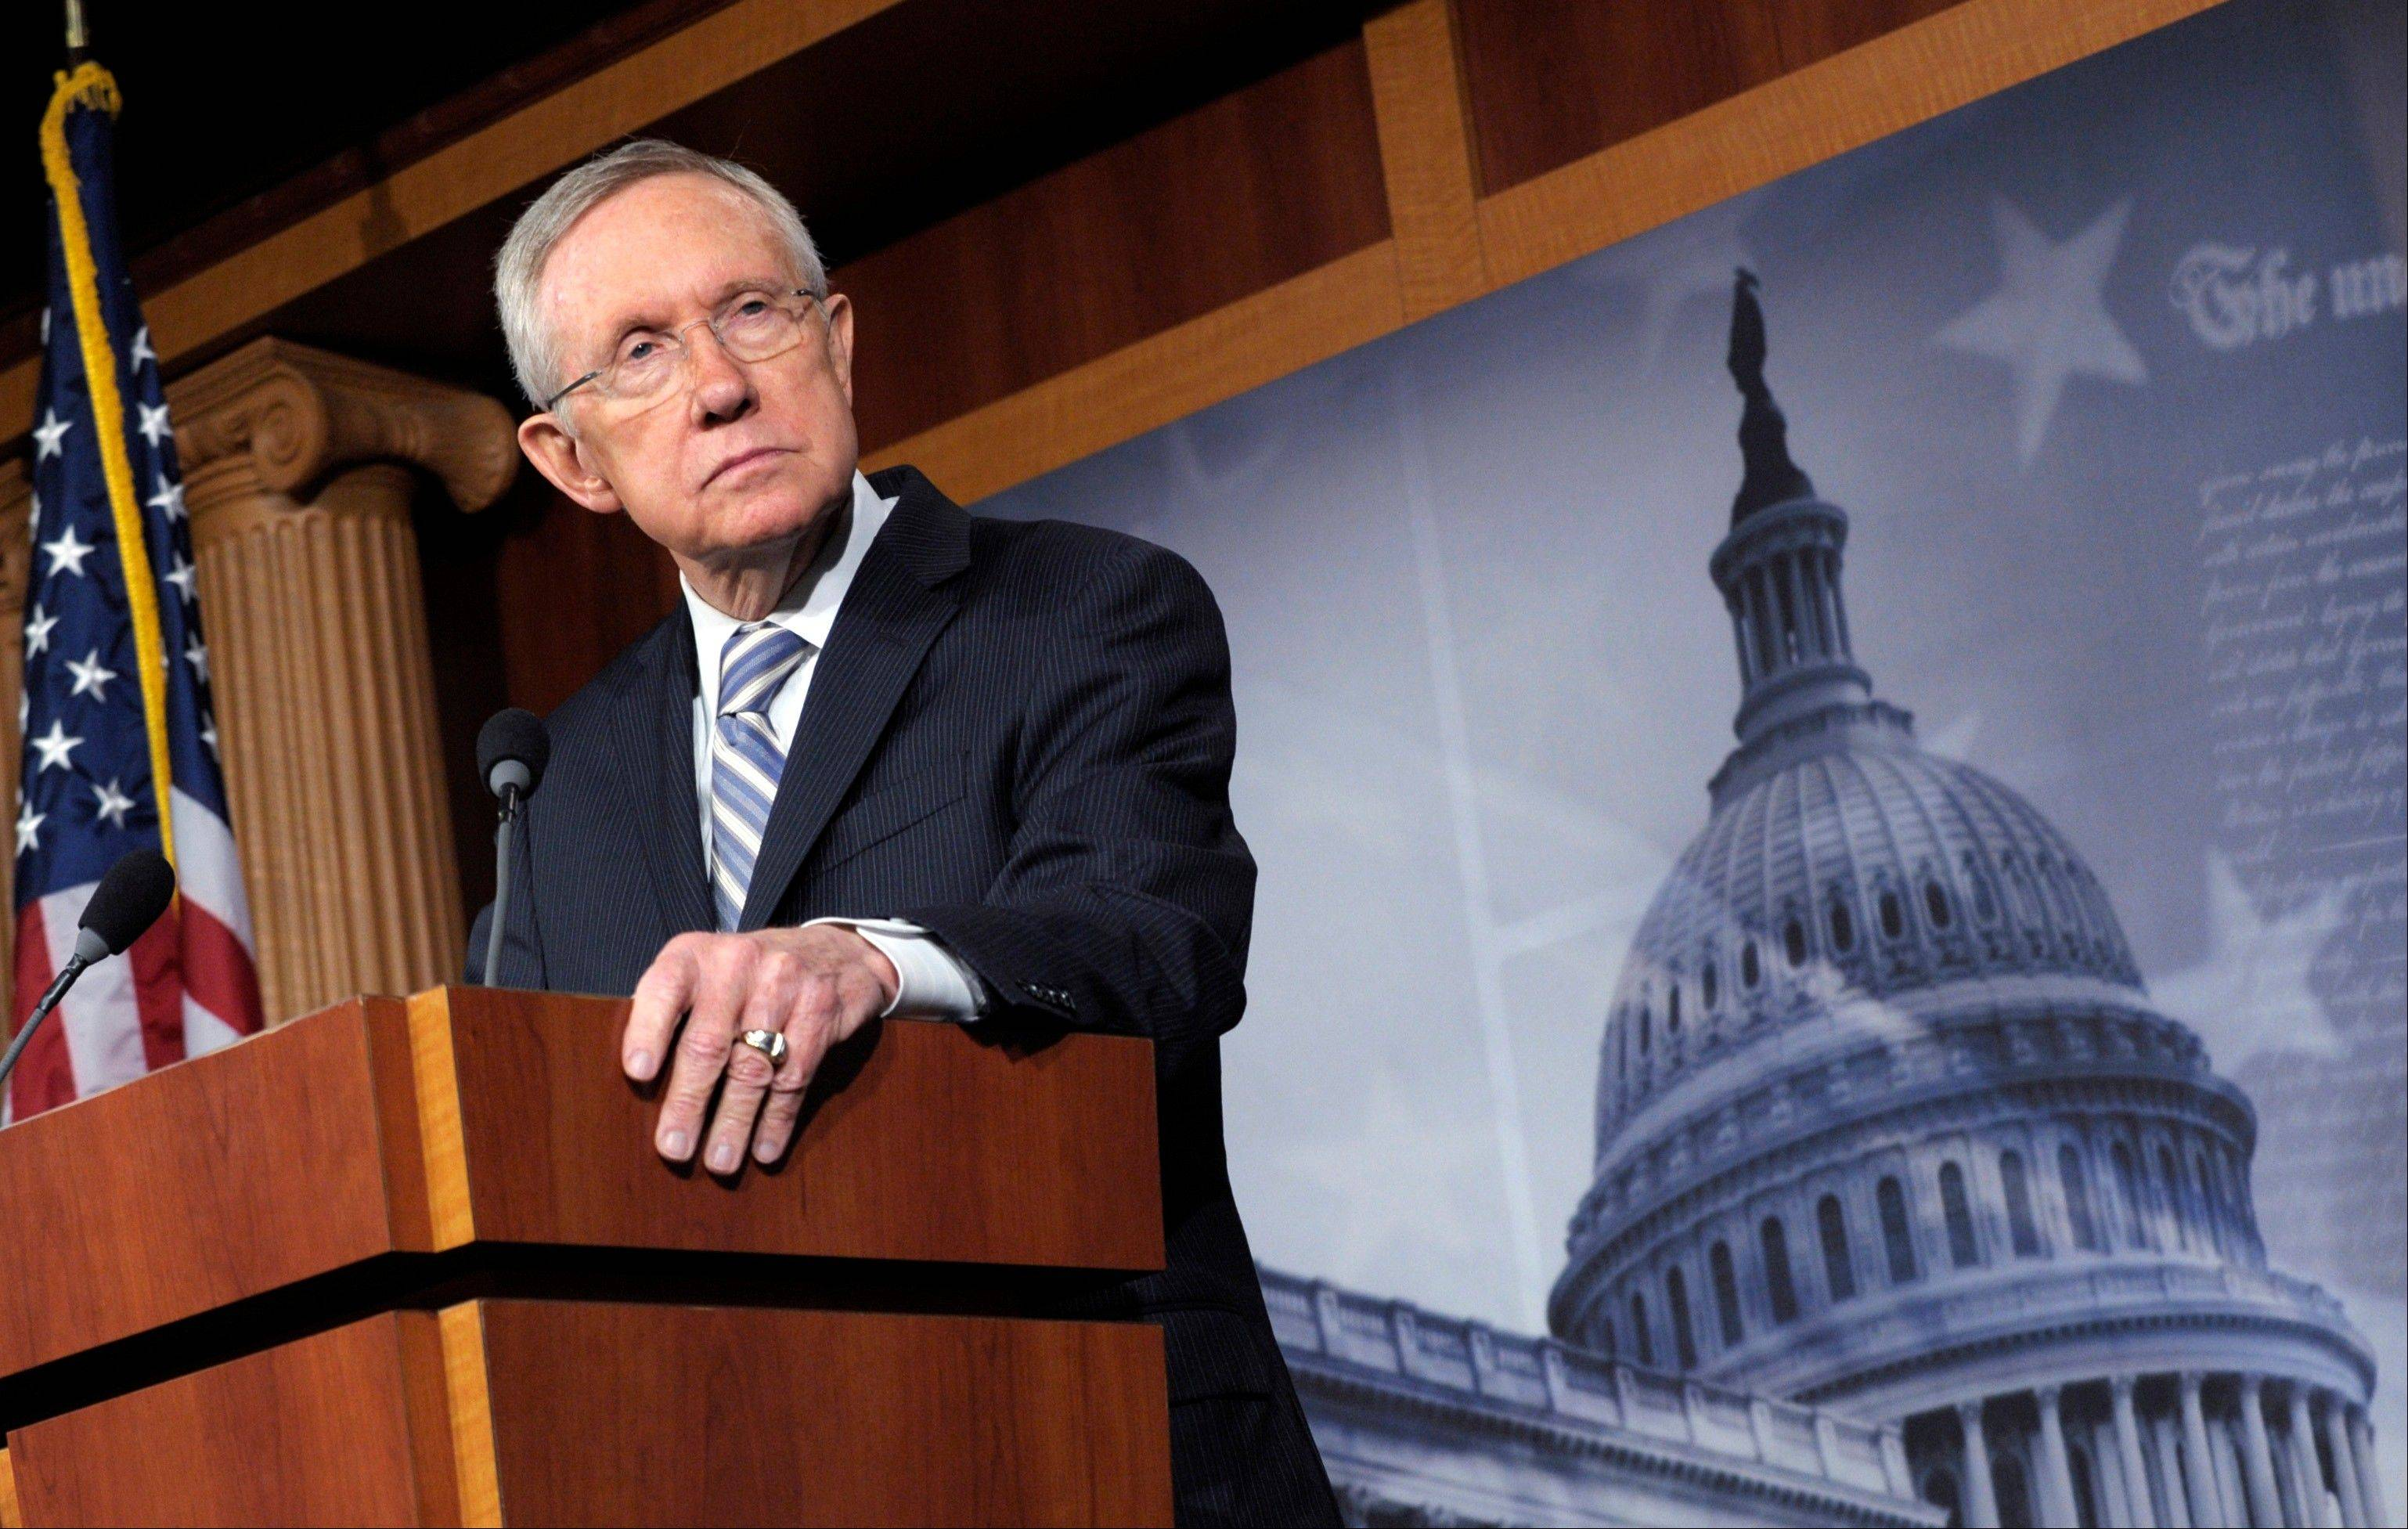 Senate Majority Leader Harry Reid of Nev. listens to a question during a news conference on Capitol Hill in Washington, Wednesday, Nov. 7, 2012, to discuss Tuesday�s election results.